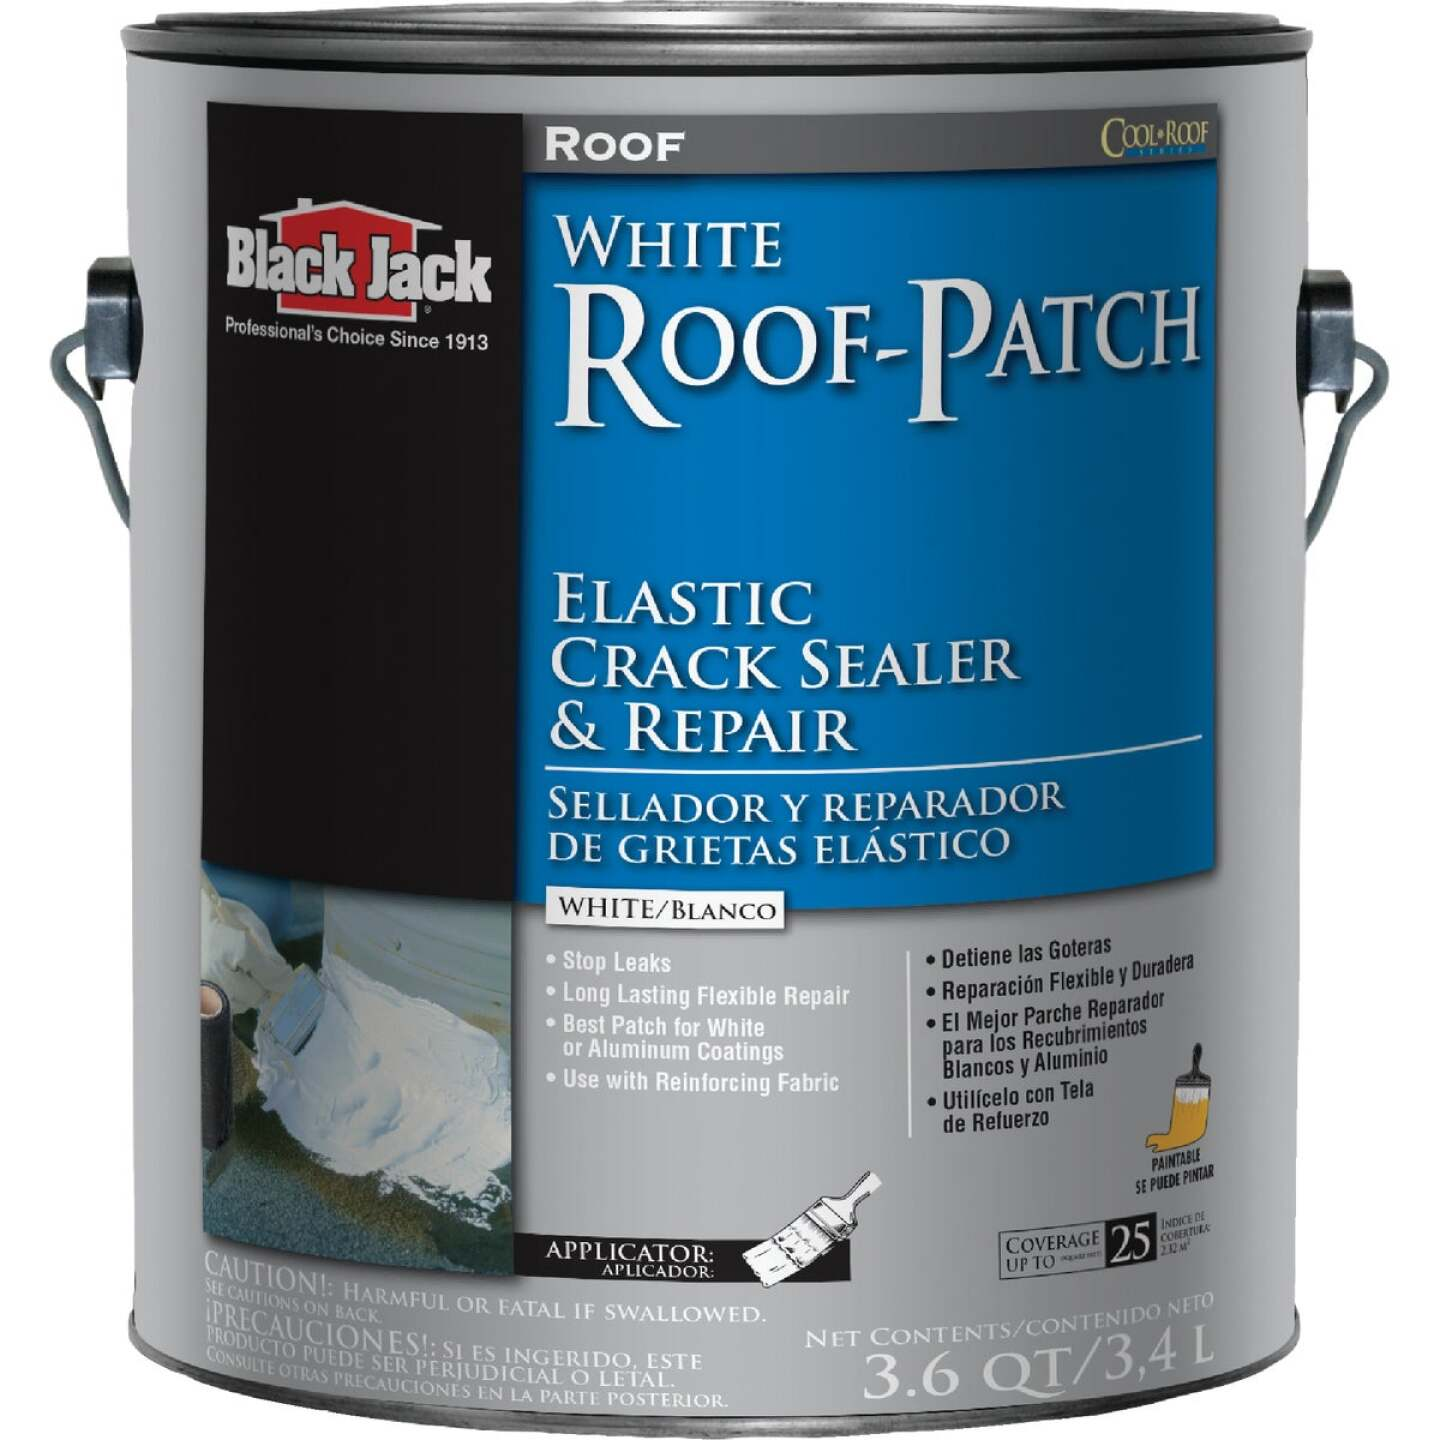 Black Jack Roof-Patch 1 Gal. Elastic Crack Sealer and Repair Image 1